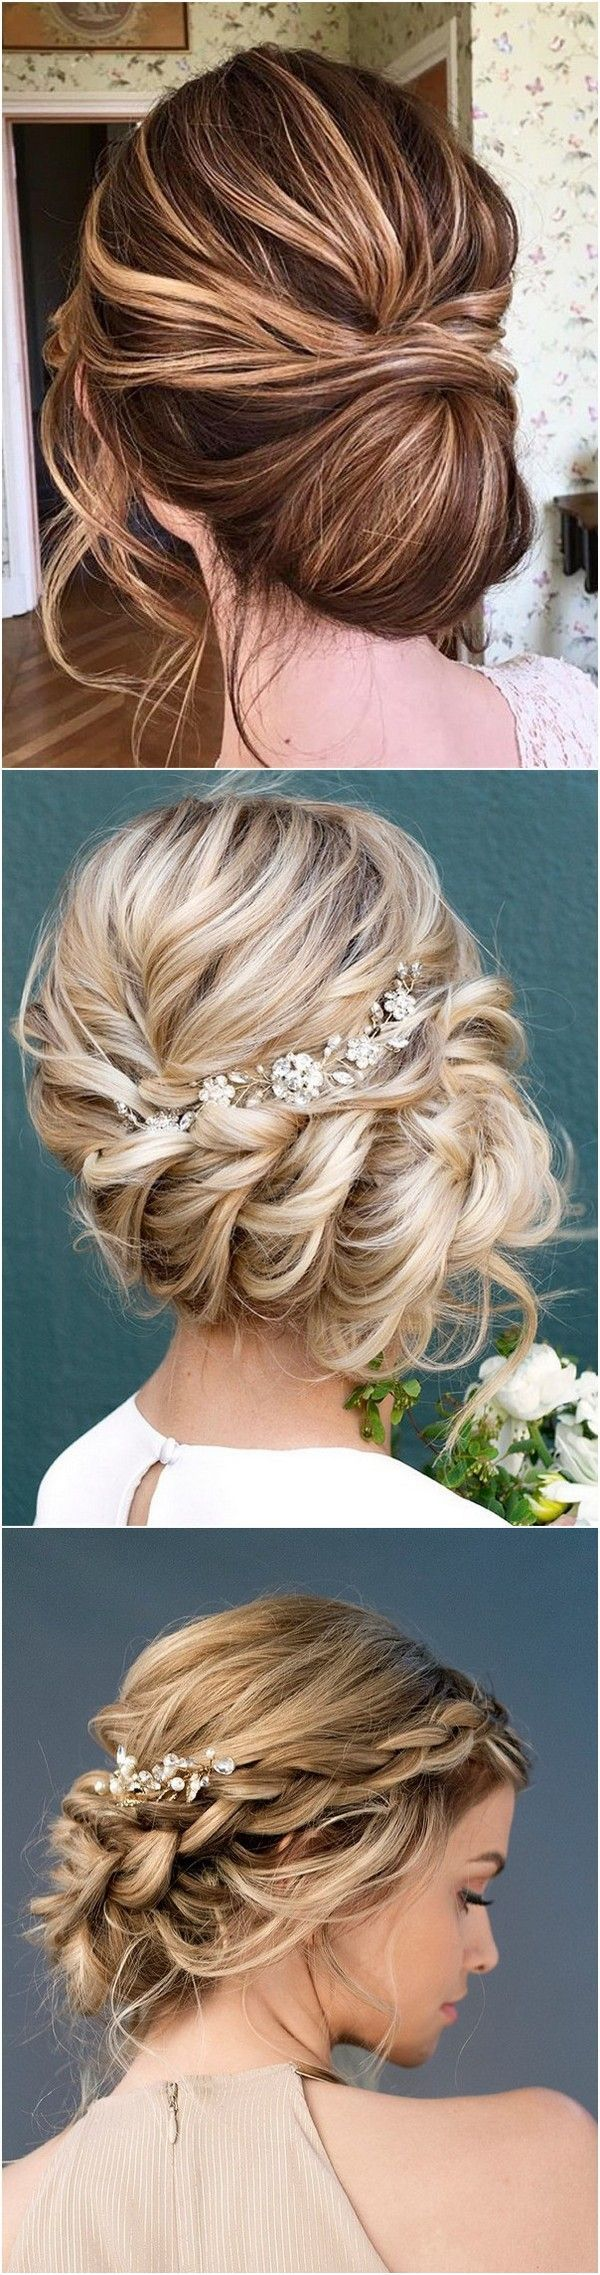 updo wedding hairstyles for 2018 by Steph 2 #bridalfashion #weddinghairstyle #updohairstyle #bridalhairstyles #weddingideas